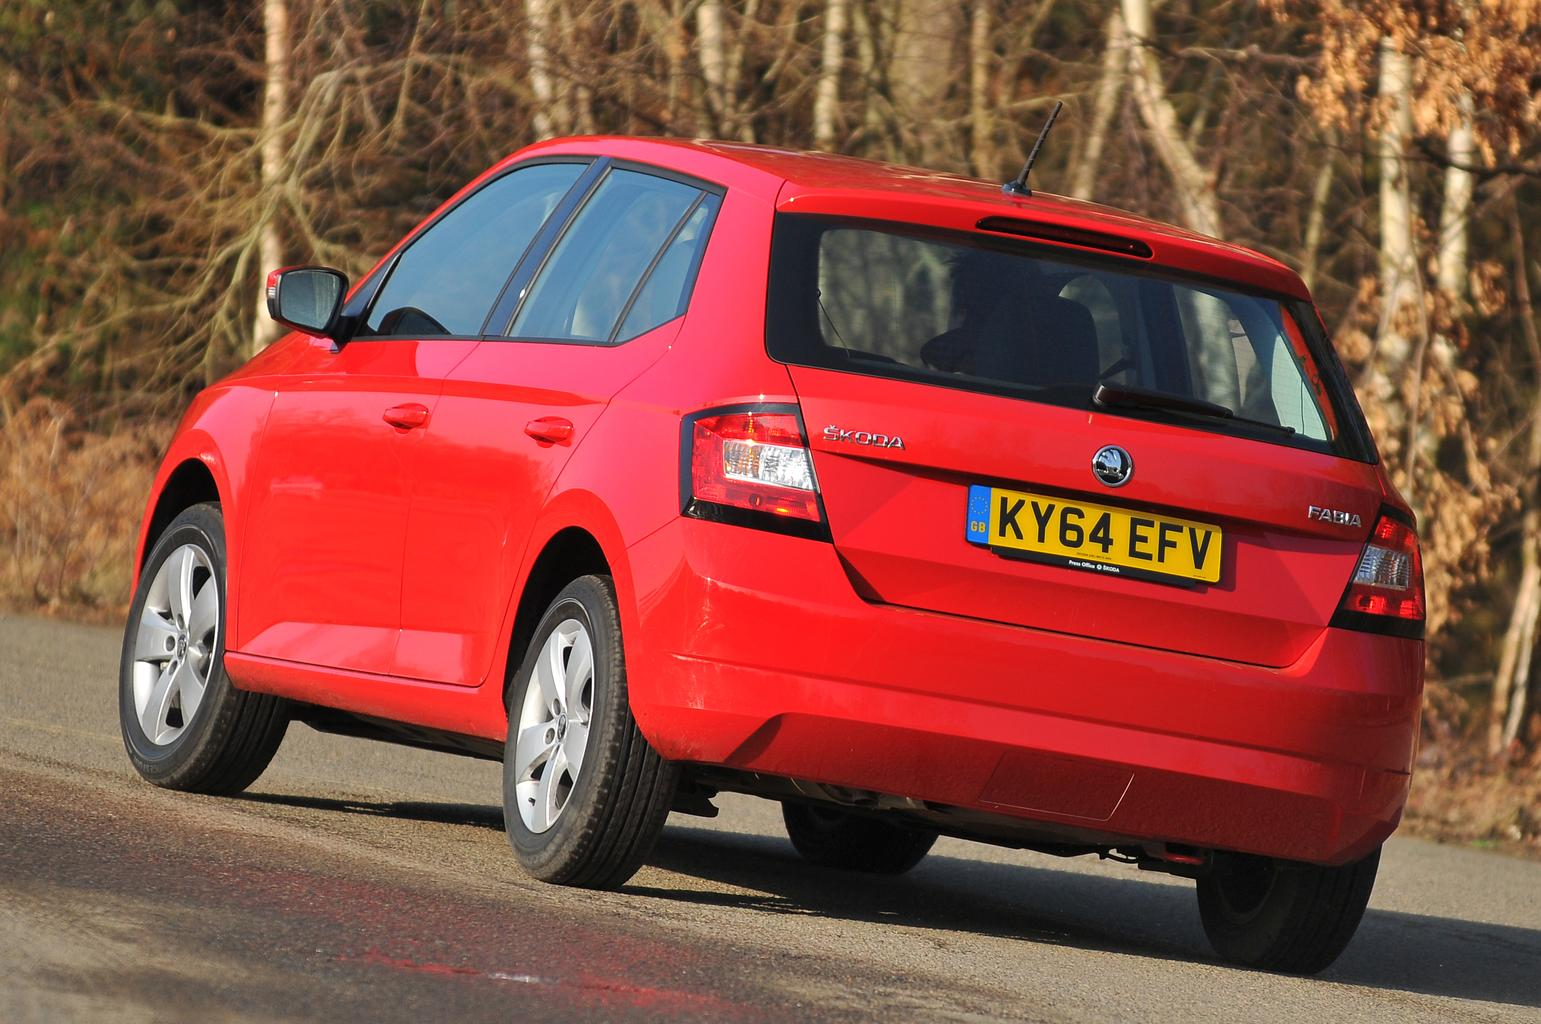 10 reasons to buy a Skoda Fabia